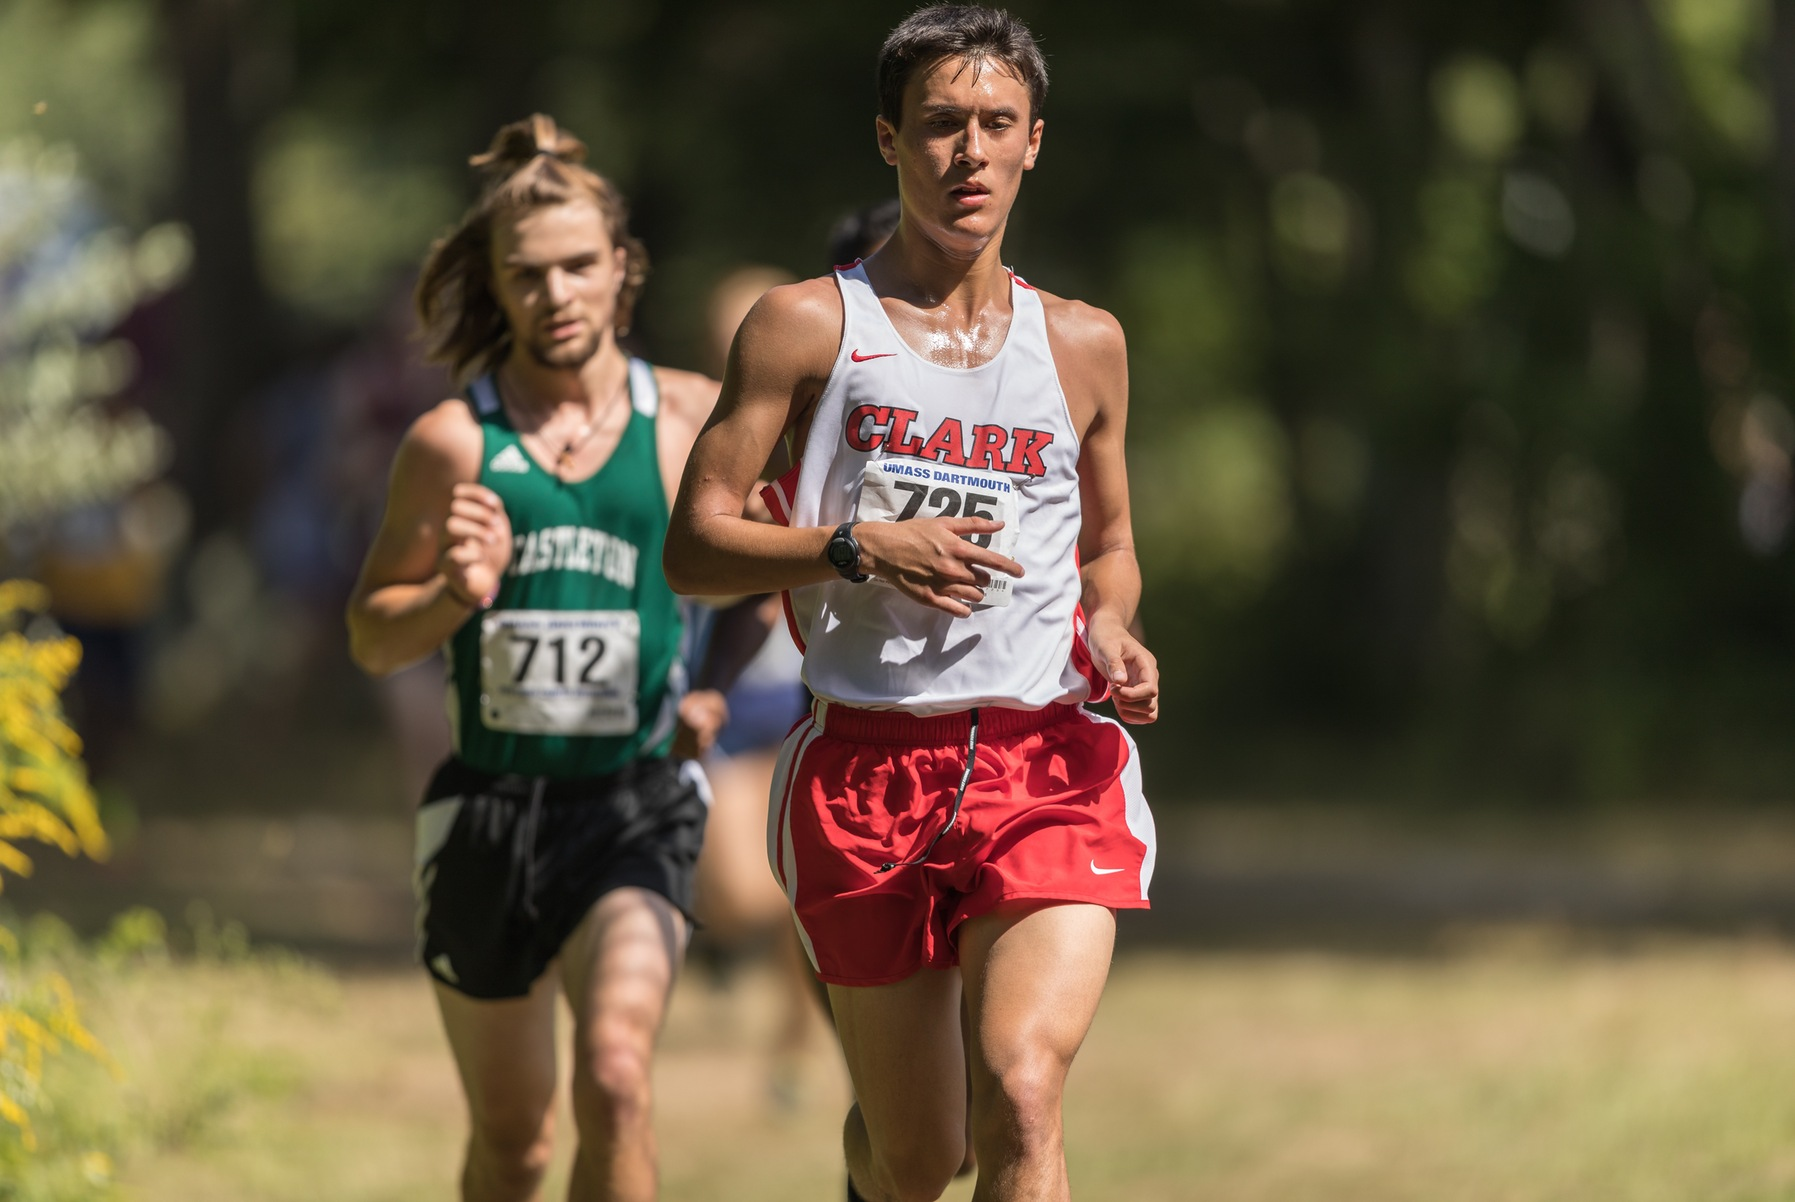 Cross Country Finishes 19th Overall In Westfield